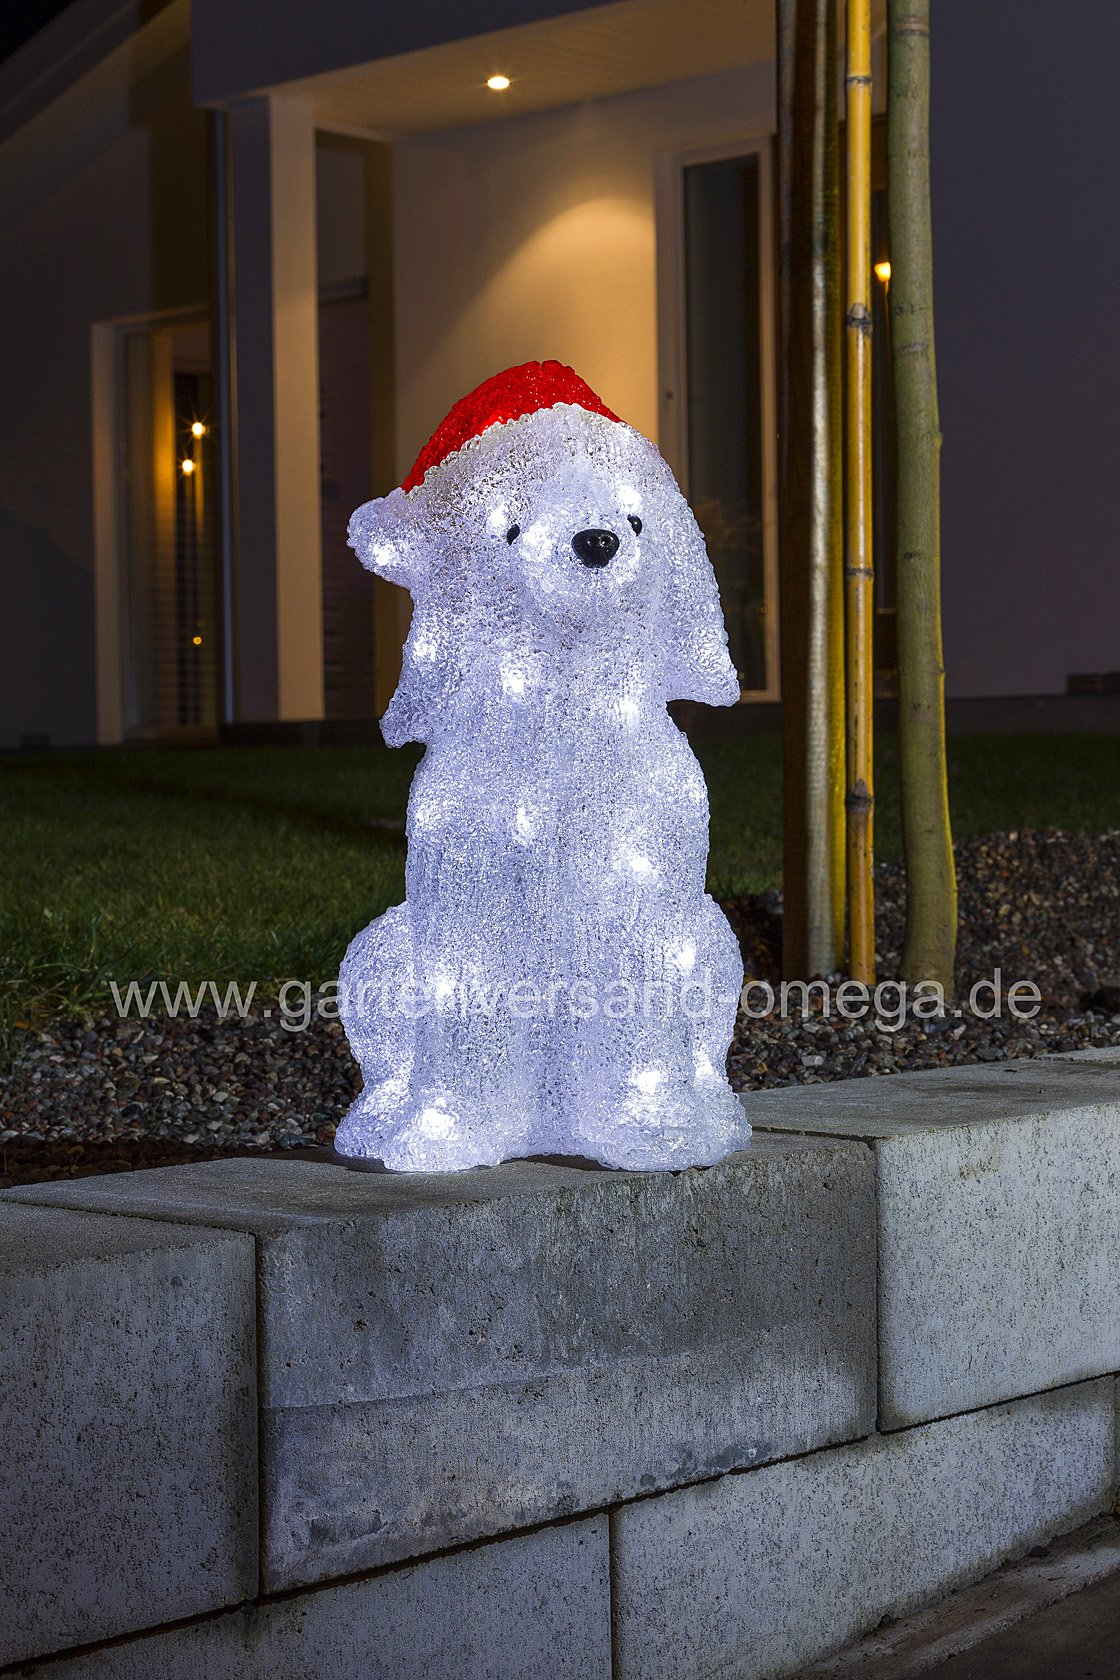 led weihnachtsau enfigur hund mit m tze beleuchtete. Black Bedroom Furniture Sets. Home Design Ideas